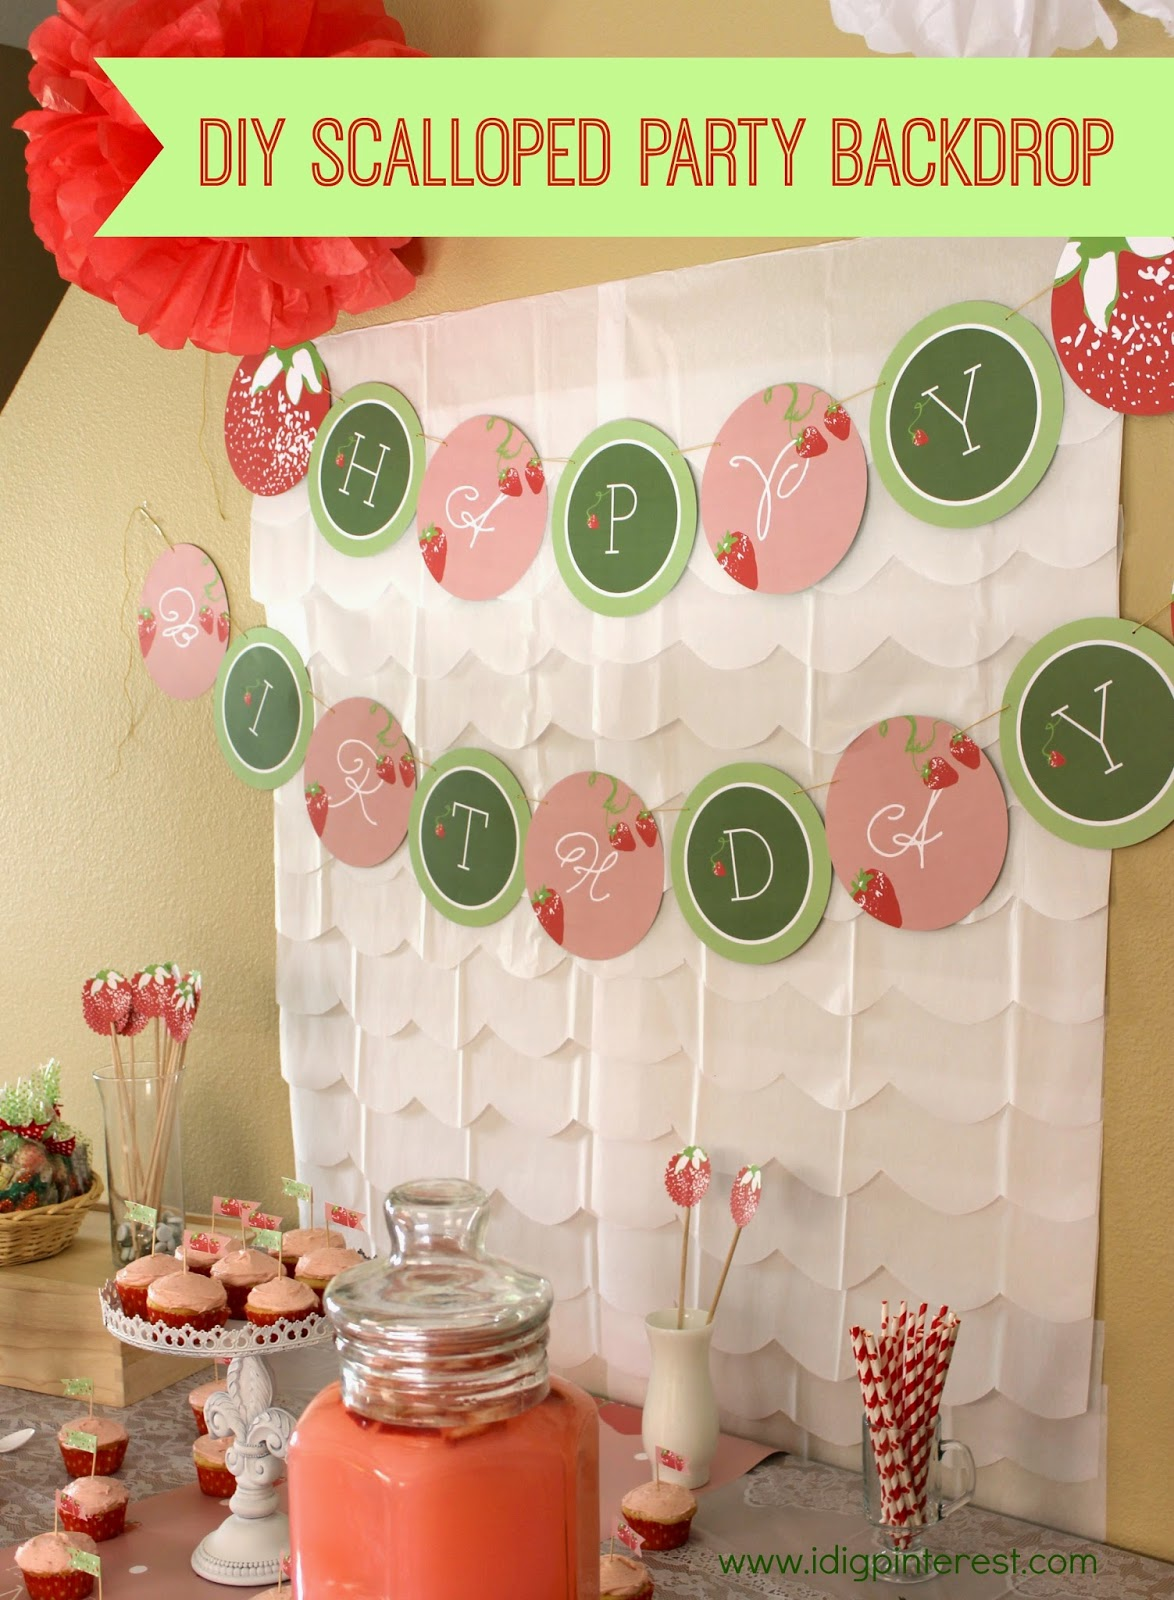 Make Party Backdrops Party Backdrop is so Easy